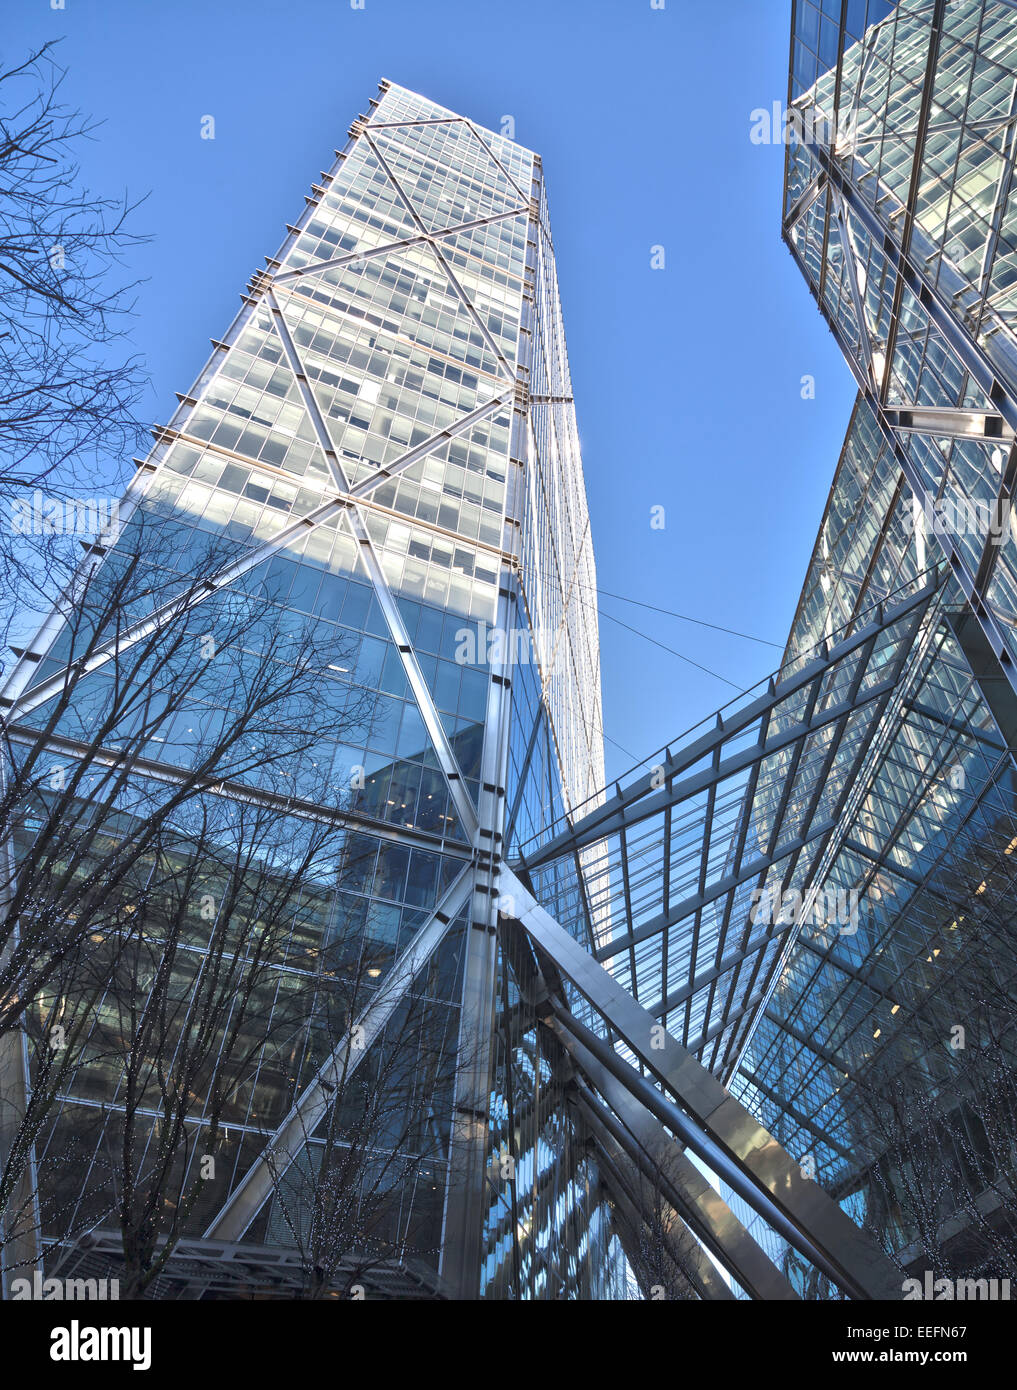 Broadgate Tower, developed by British Land - Stock Image